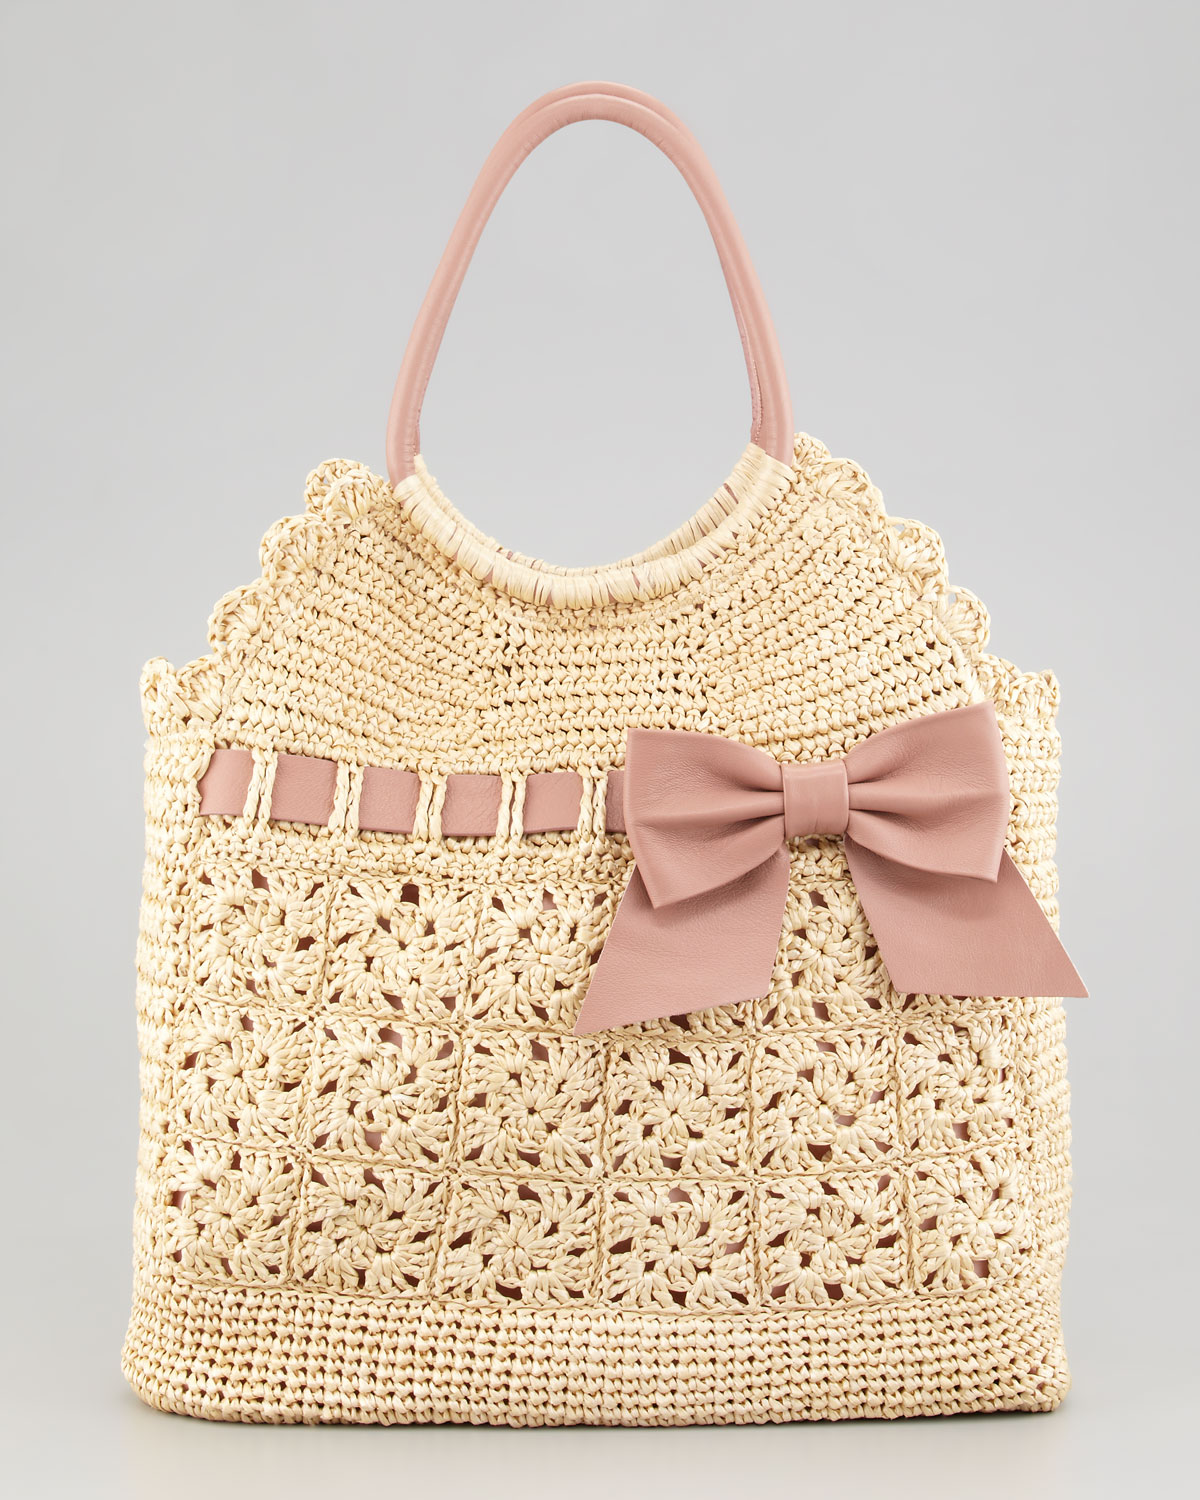 Crochet Purses And Bags : Red valentino Leather and Crochet Raffia Tote Bag in Natural Lyst